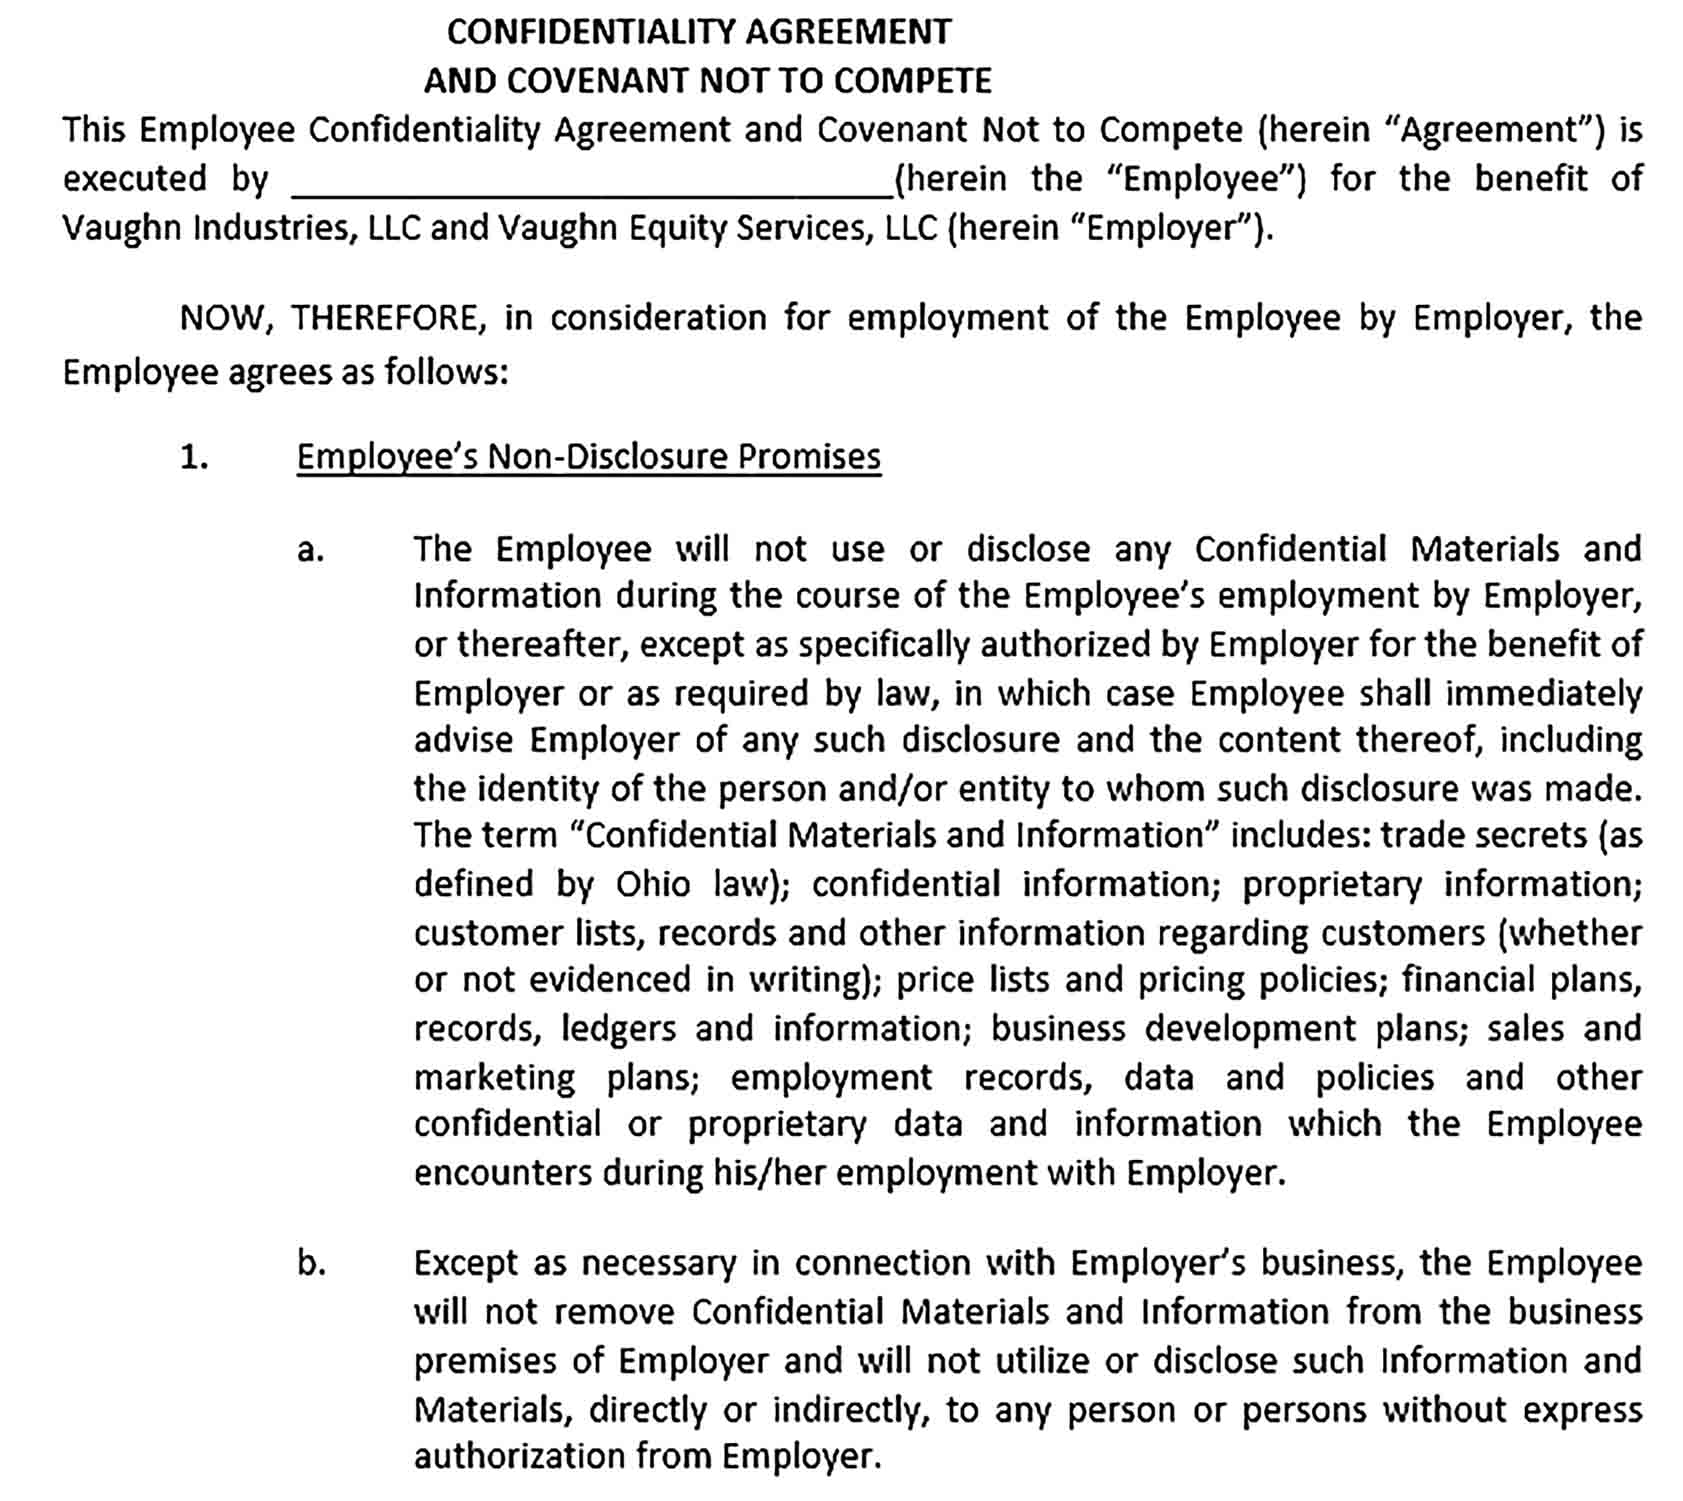 Sample Employee Confidentiality Agreement 001